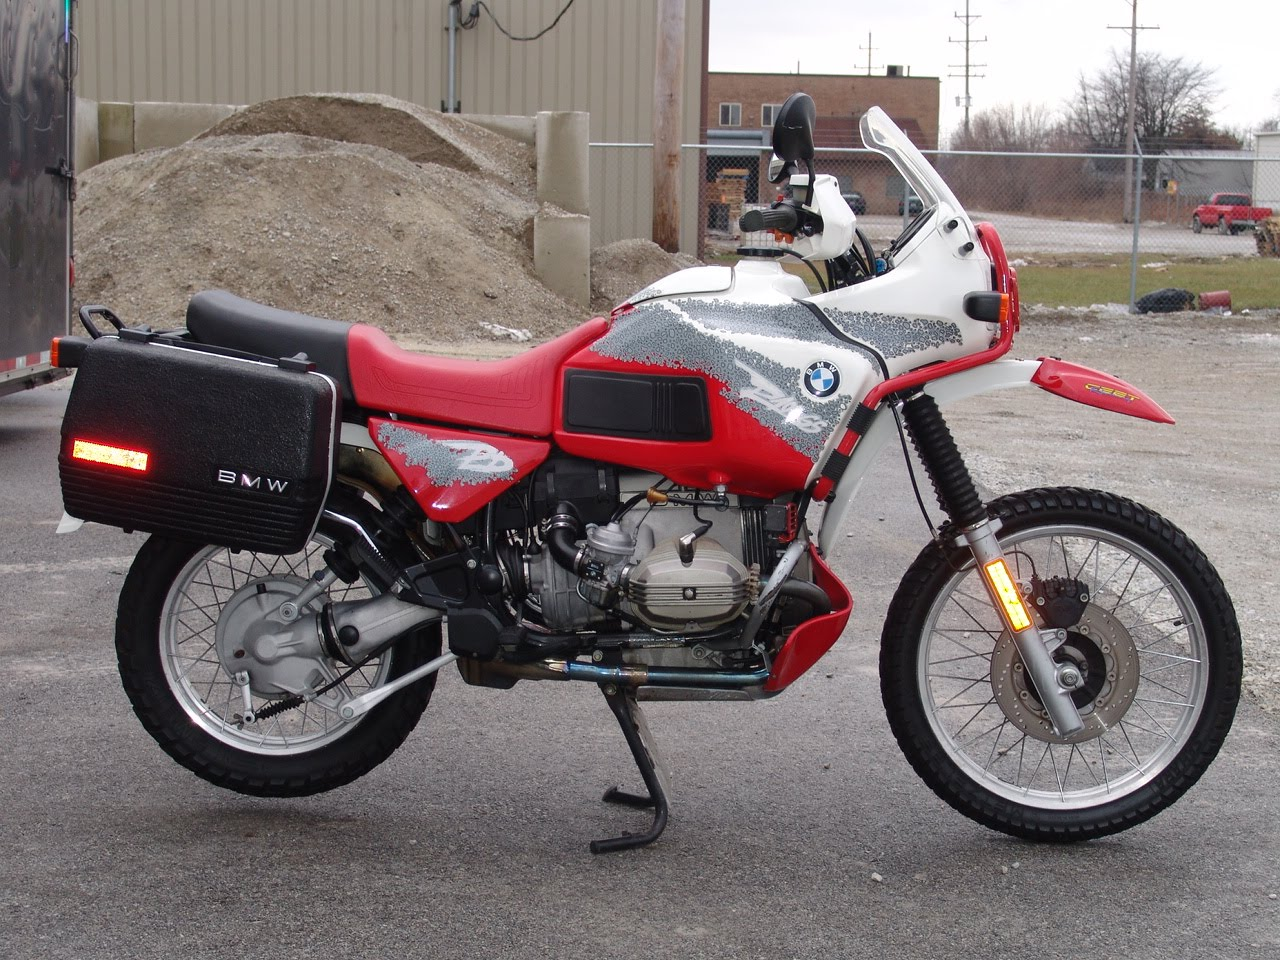 BMW R80GS 1995 images #6409